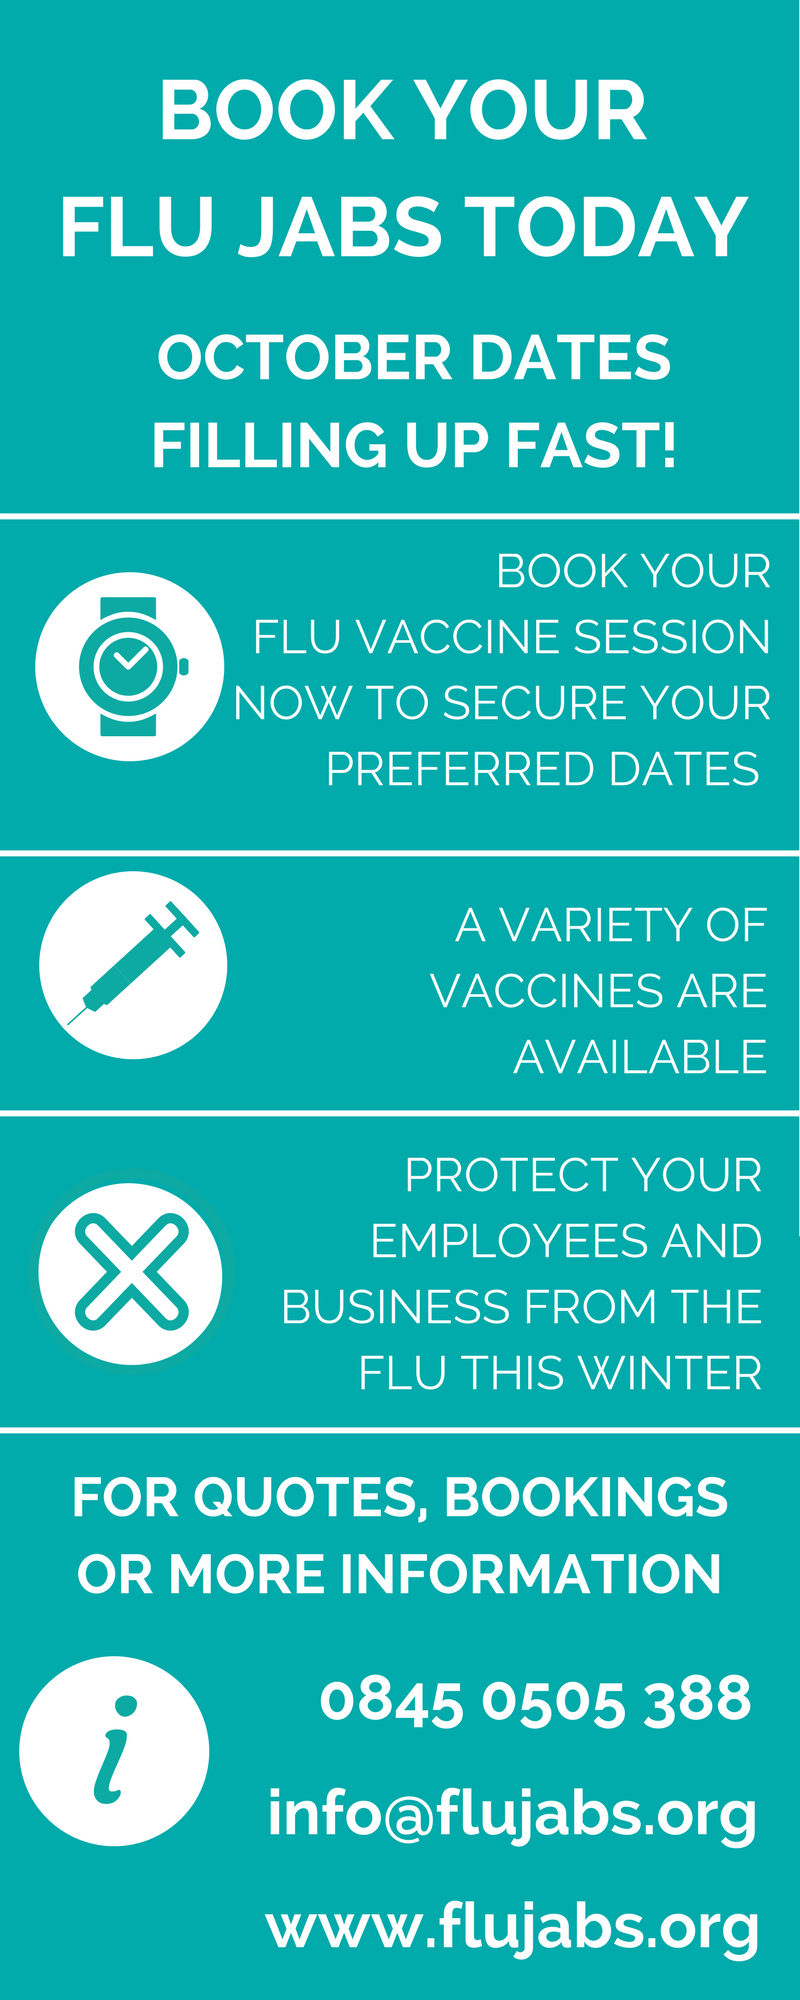 Flu Jabs London Corporate Flu Vaccination Programme